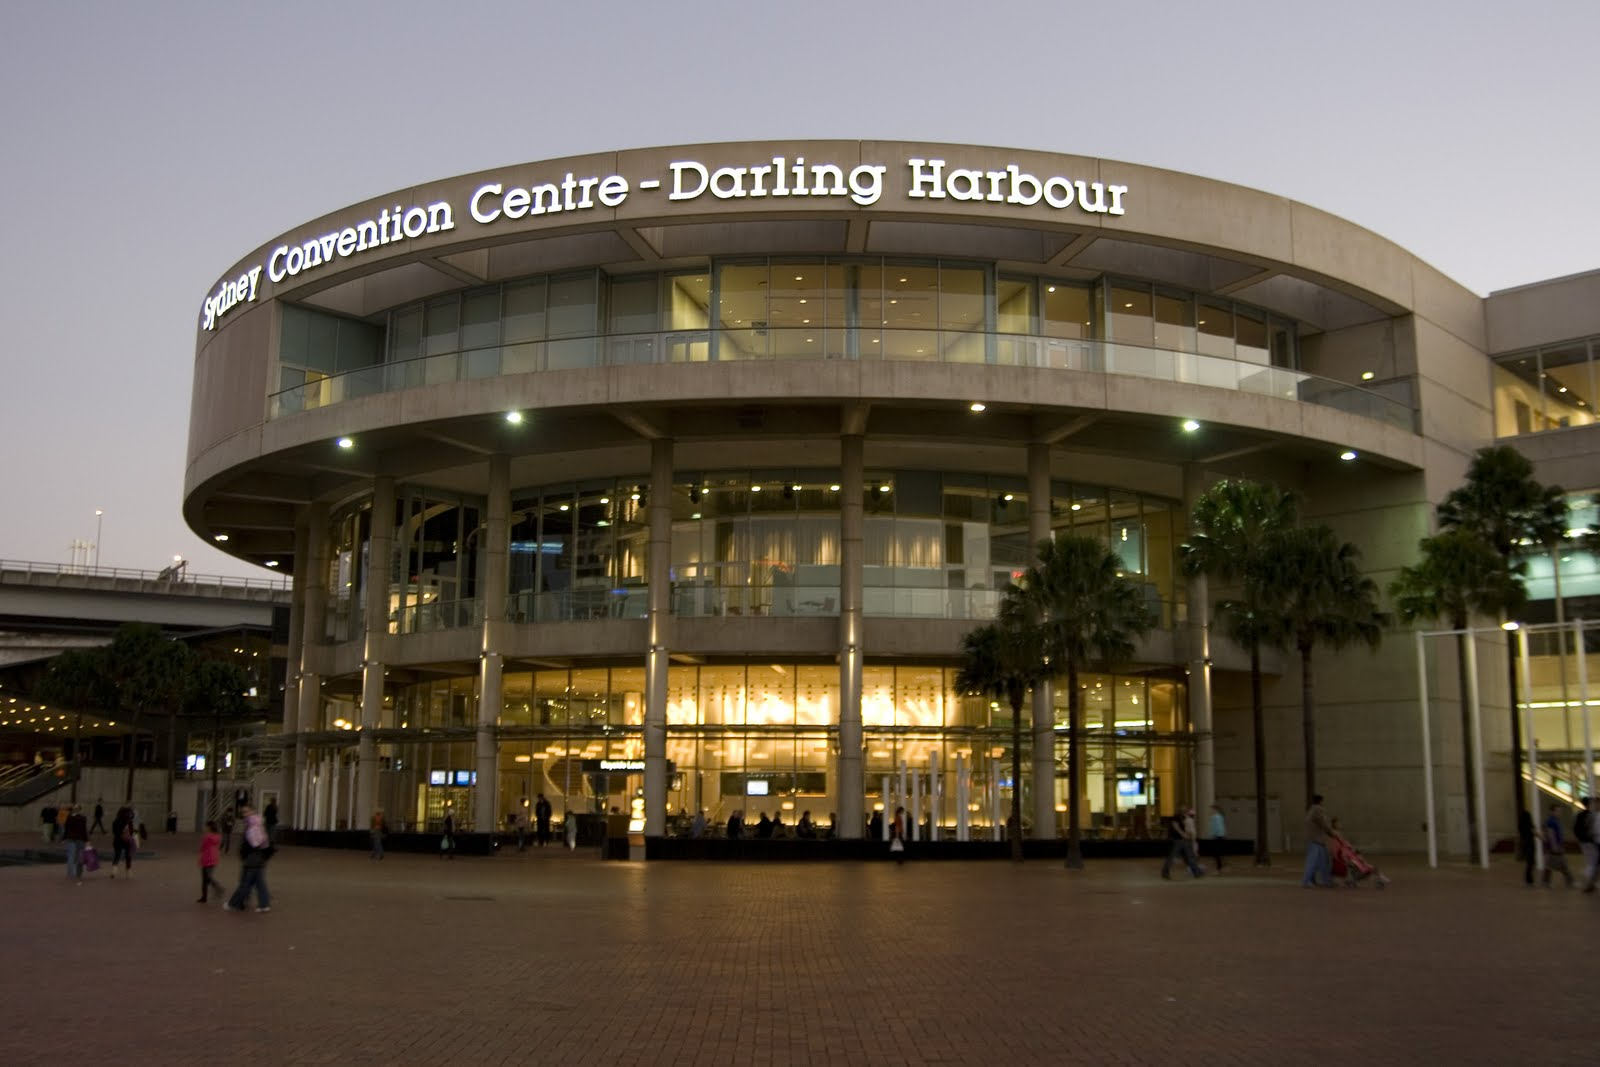 sydney exhibition center location - photo#6